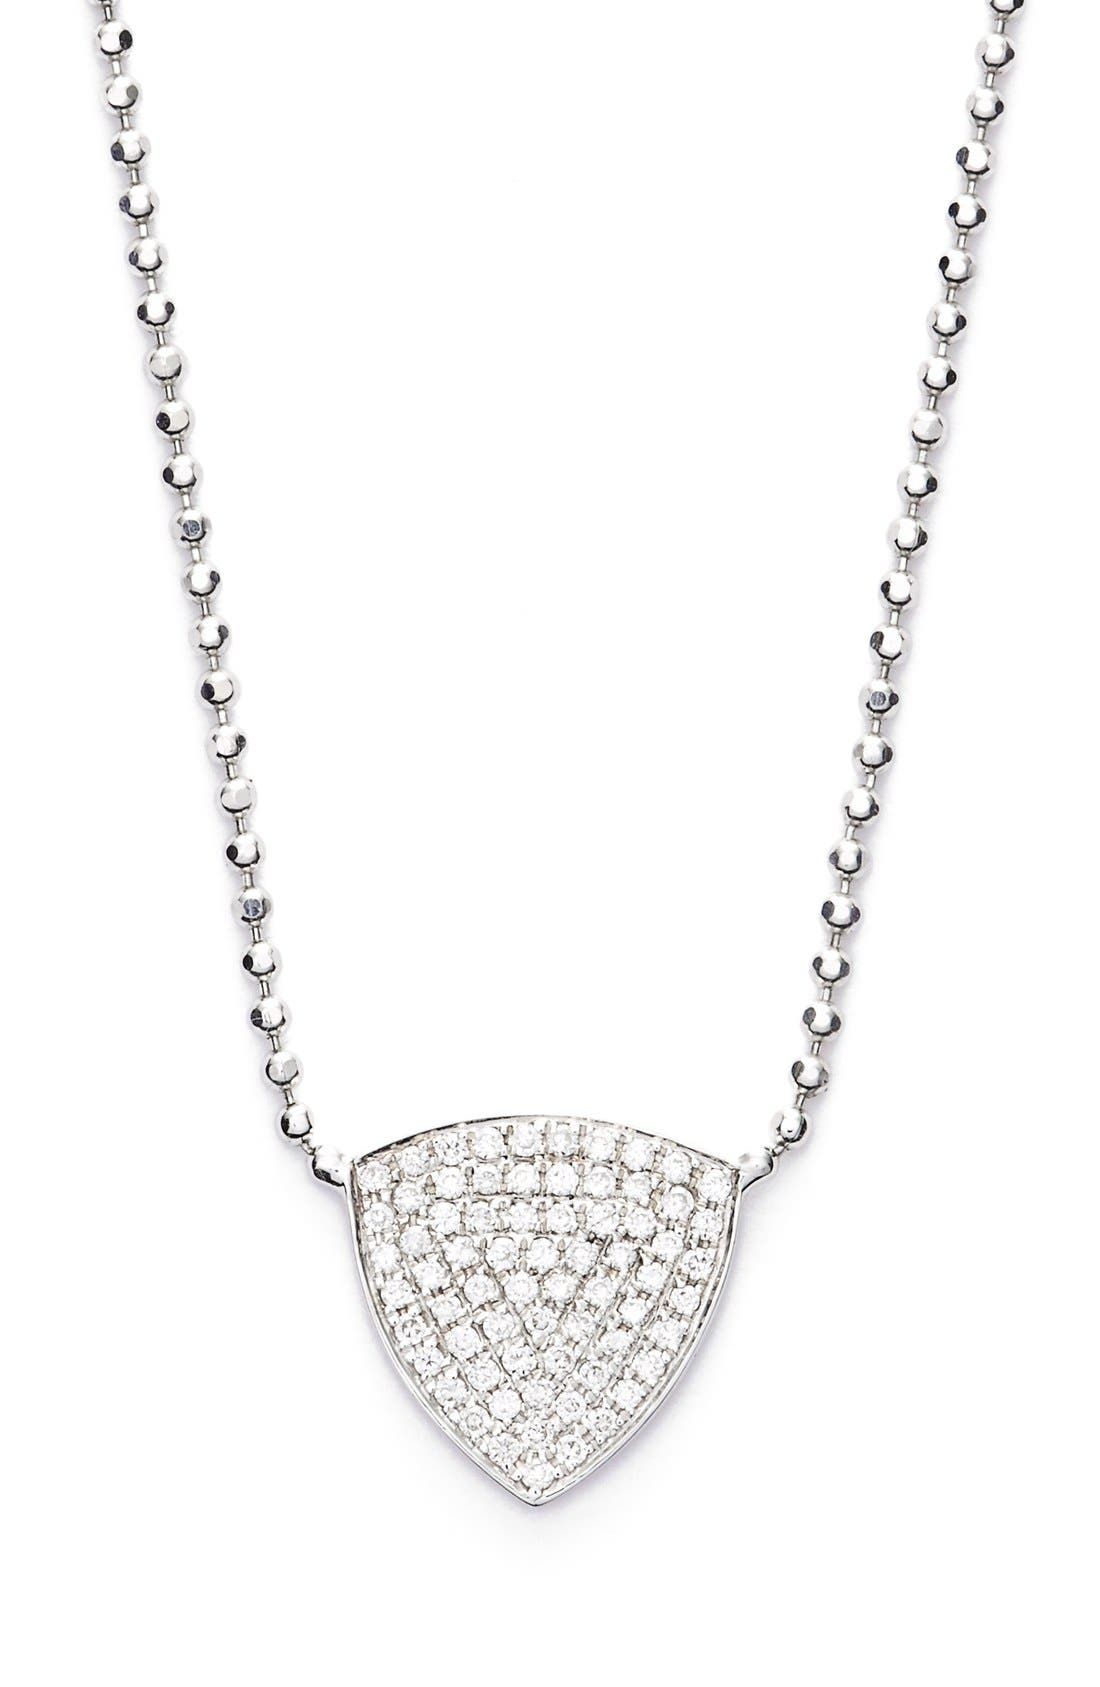 Main Image - Bony Levy 'Aurora' Diamond Pavé Triangle Necklace (Limited Edition) (Nordstrom Exclusive)